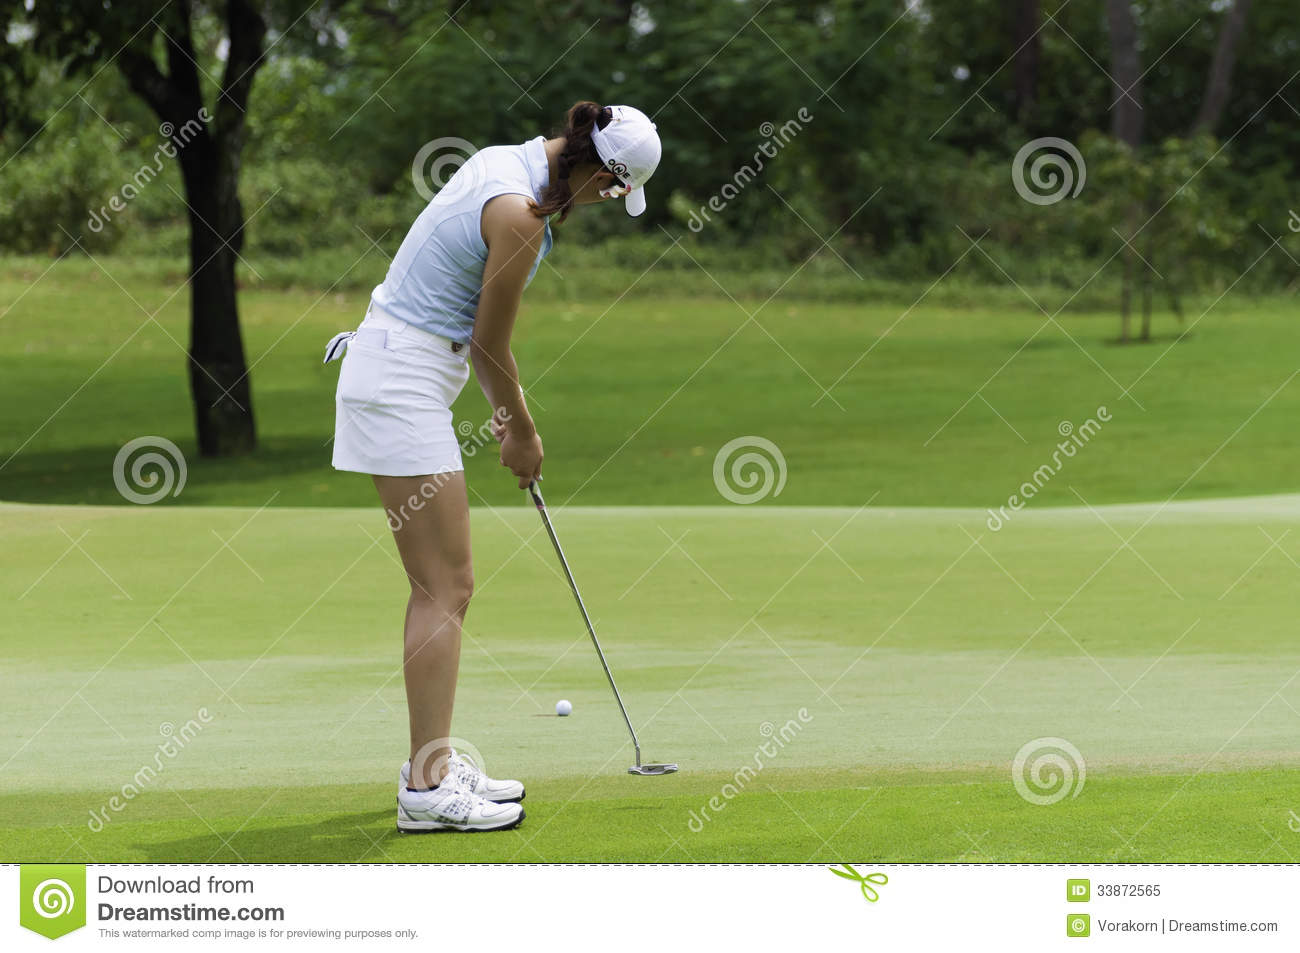 Free golf dating in usa